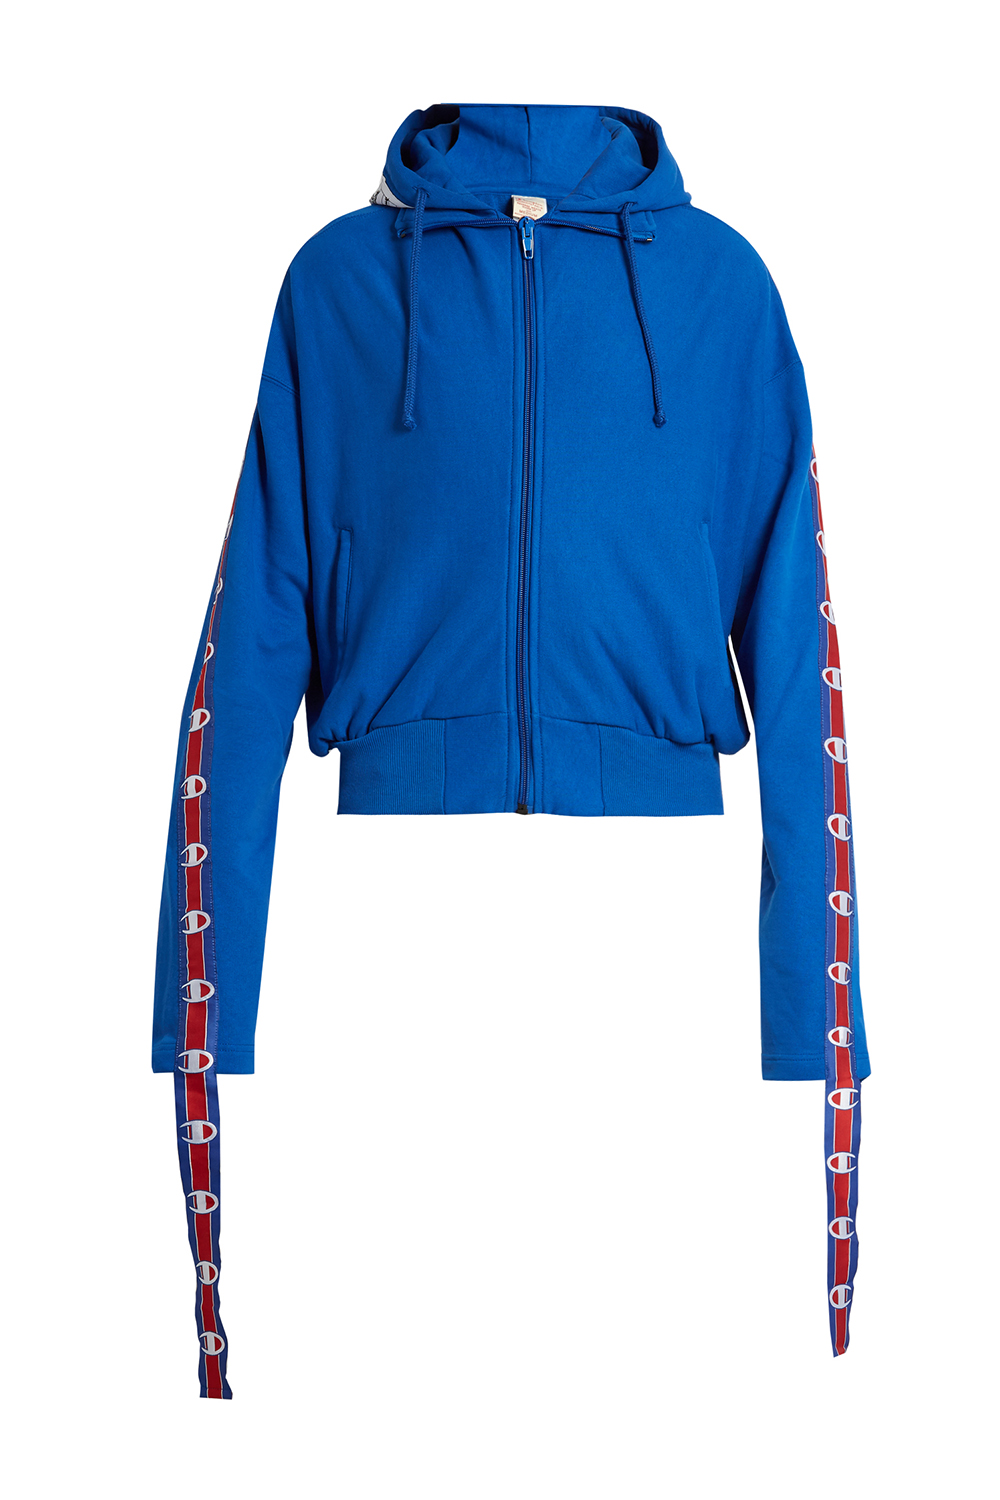 Vetements x Champion Releases an Eccentric Activewear ...